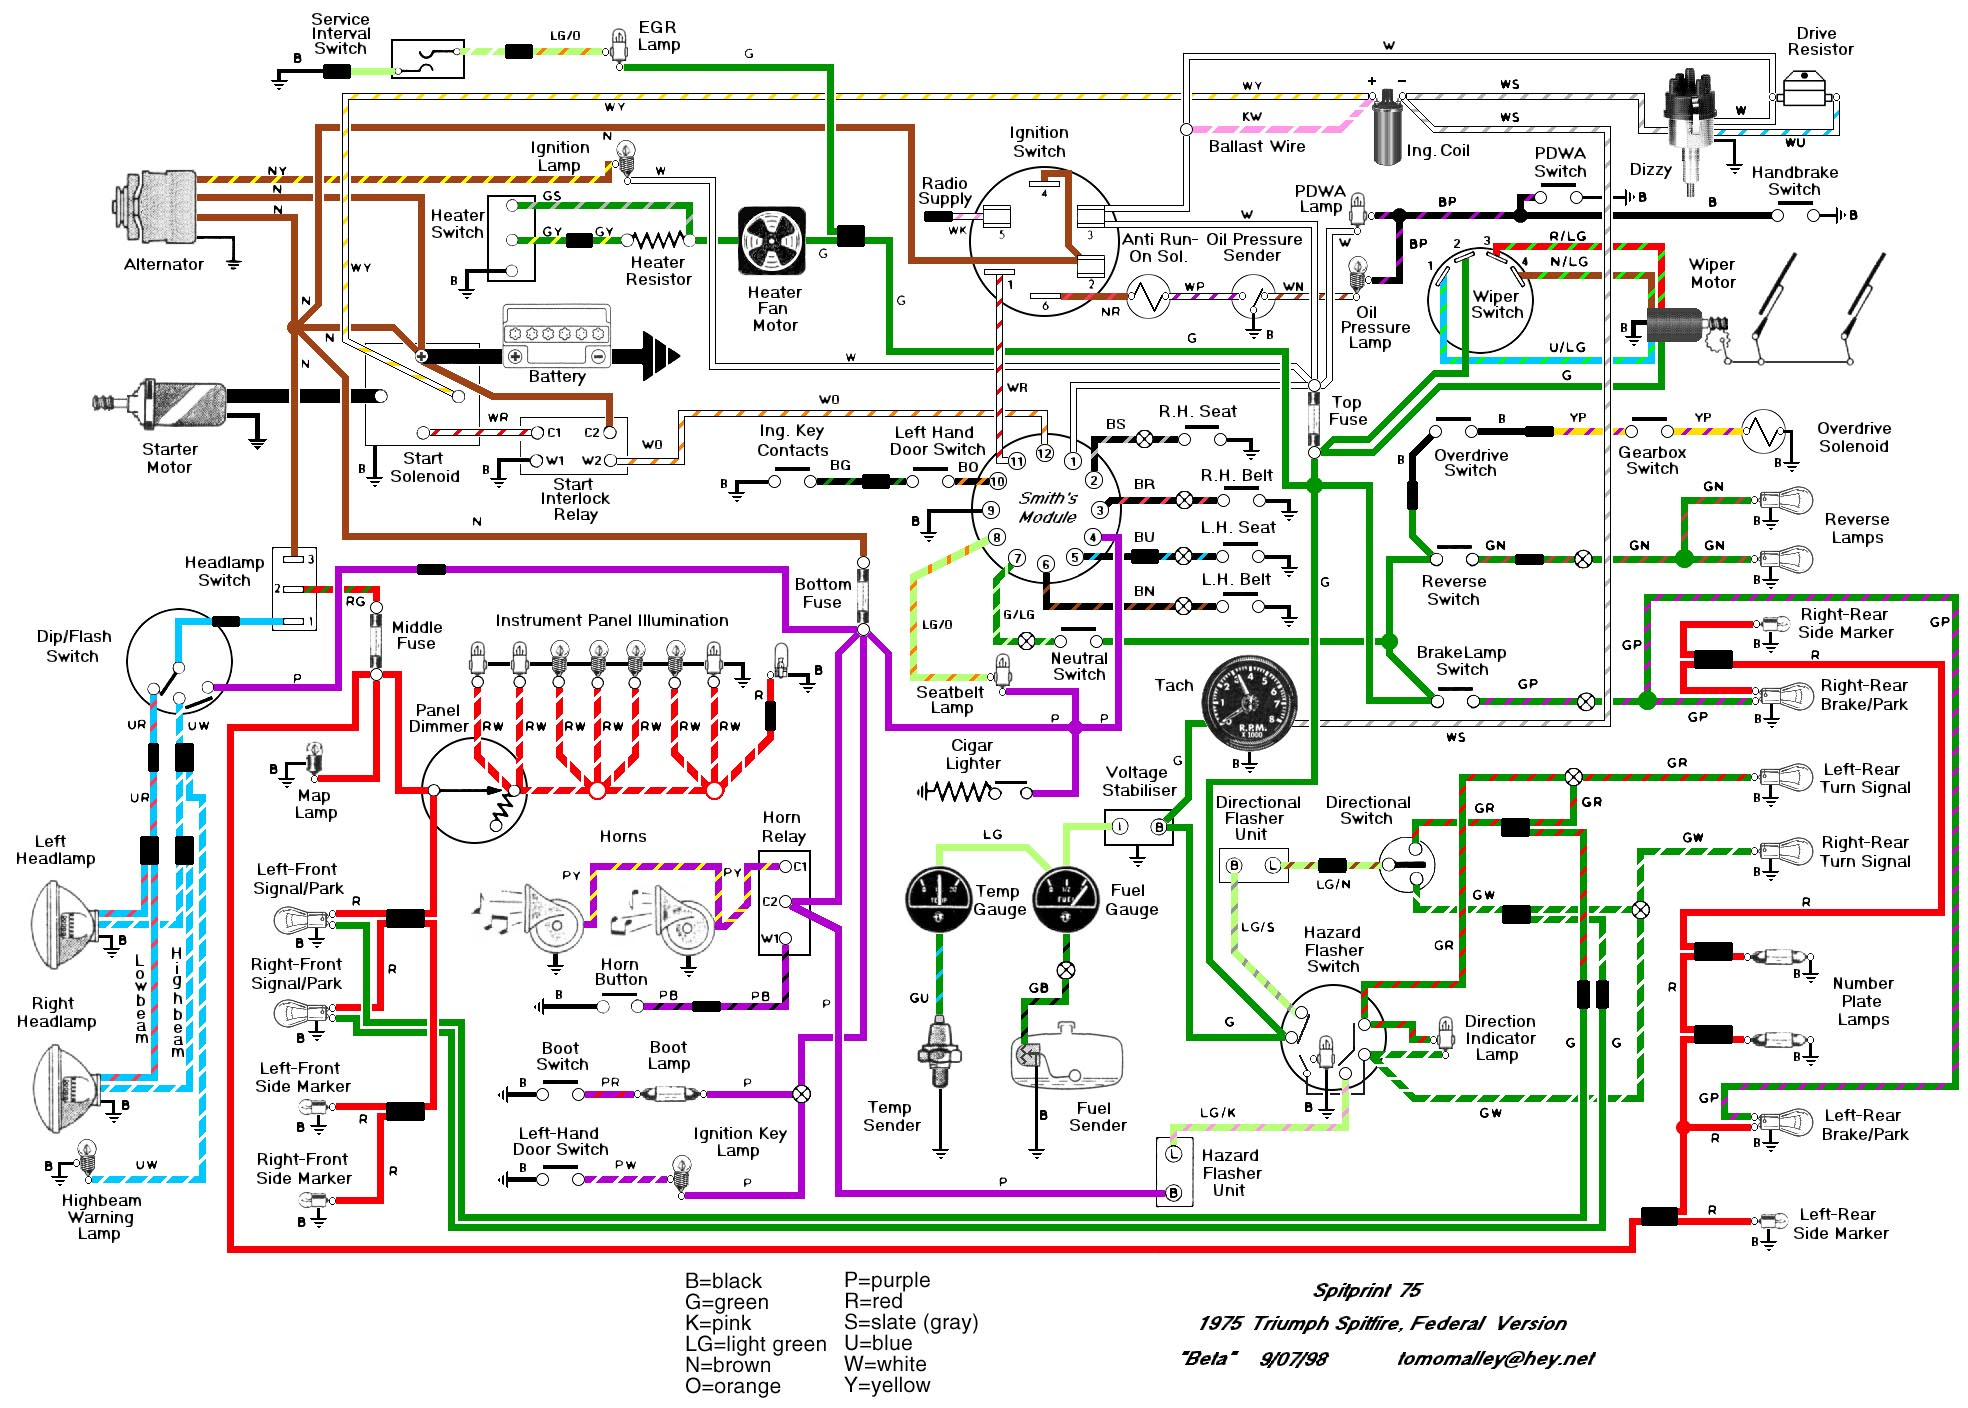 76 ford f100 truck wiring diagram